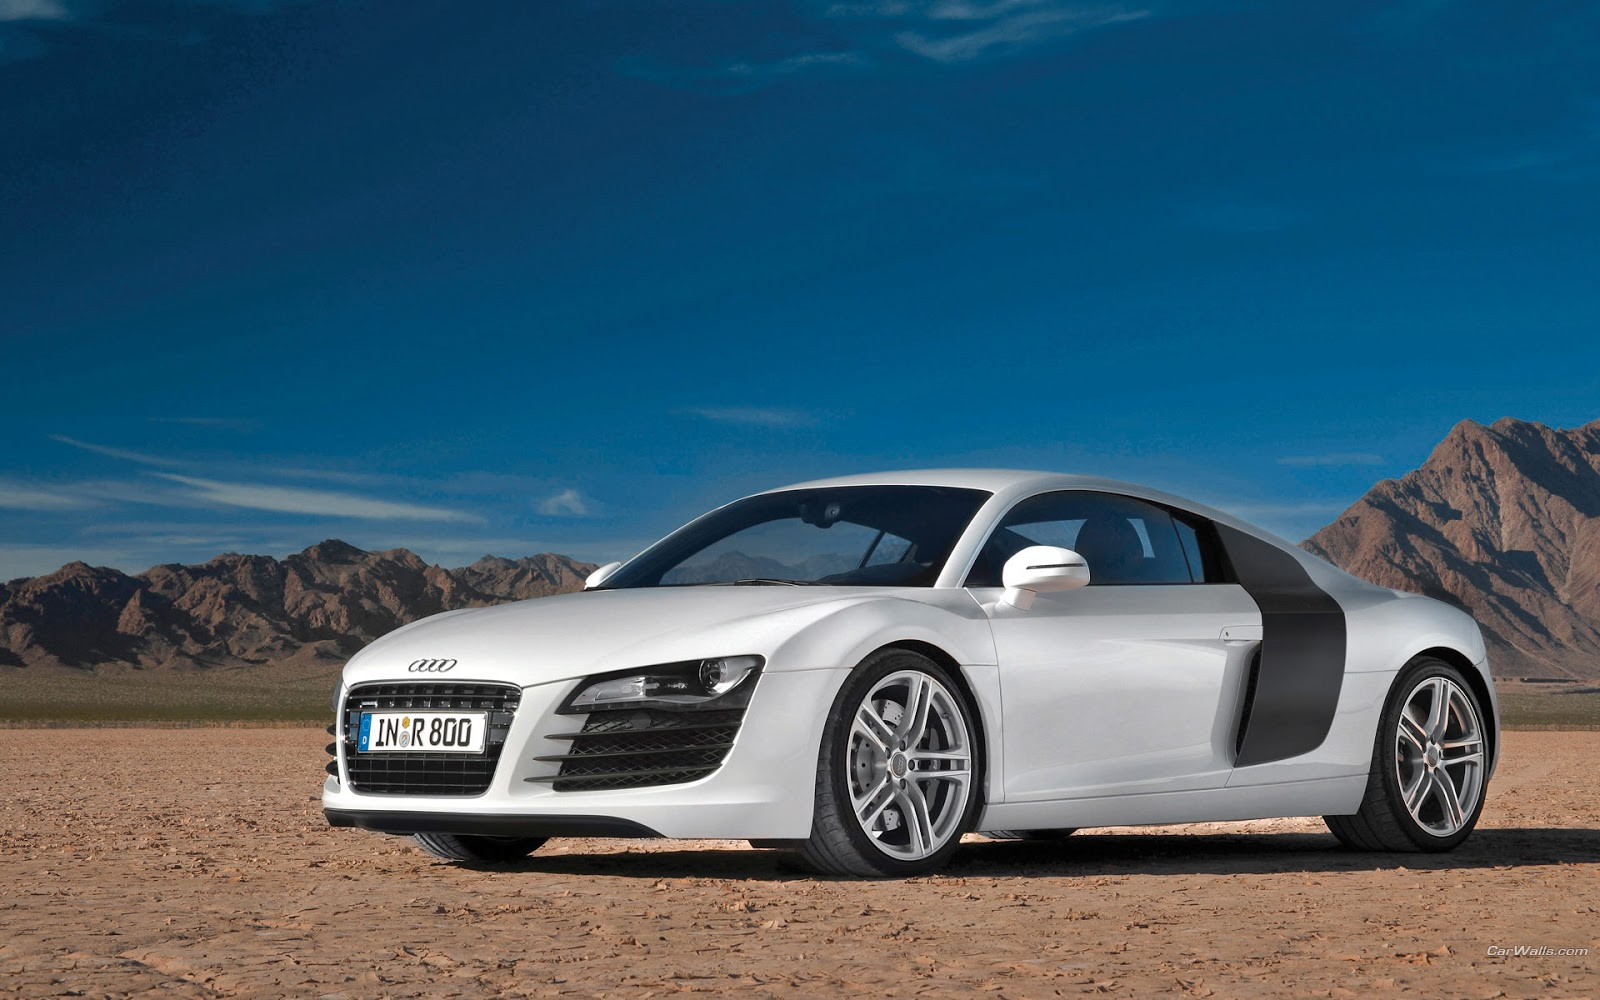 Perfect Top 27 Most Beautiful And Dashing AUDI CAR Wallpapers In HD